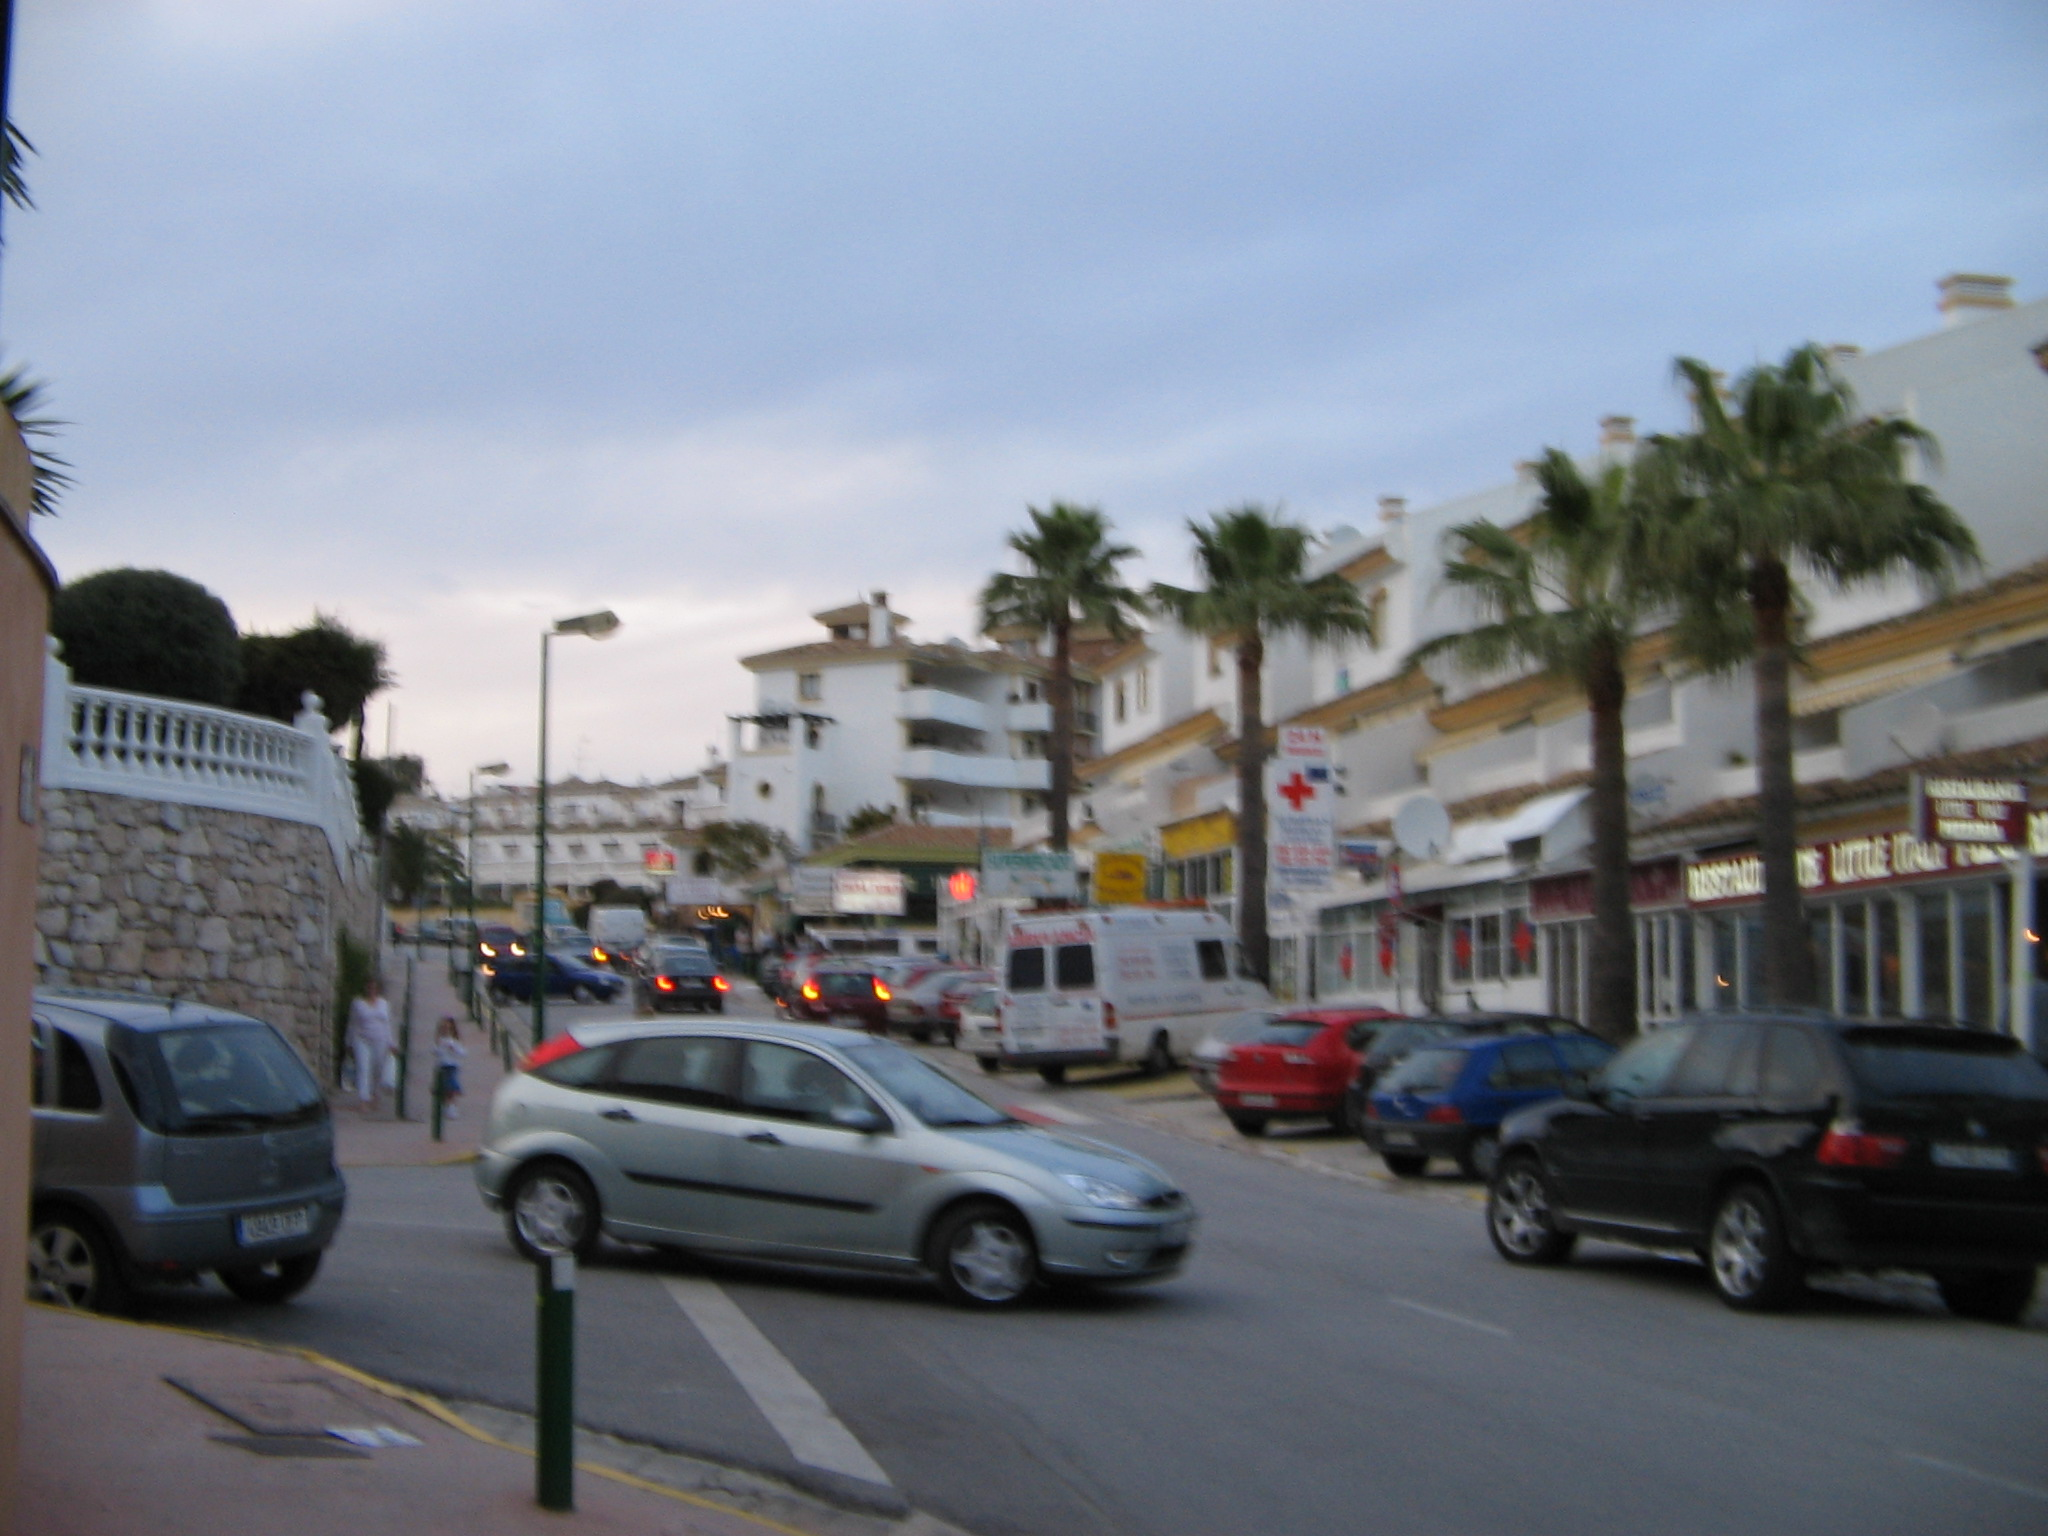 Onda Spain  City pictures : ... :Central street in Calahonda, Spain 2005 22 Wikimedia Commons